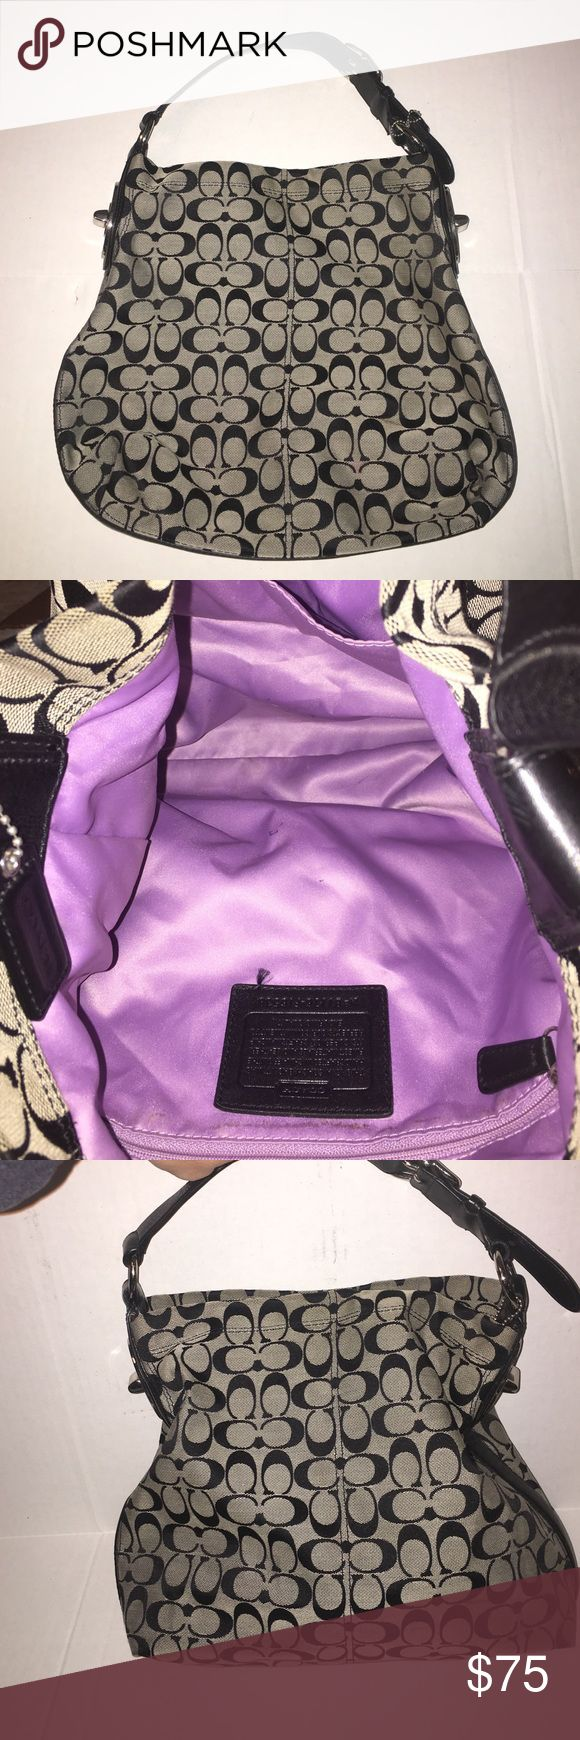 Coach purse Pre owned Coach purse in great condition!  The inside does a does have a few small makeup marks.  Smoke and pet free house.   ** the number on this bag is B1178-F16538**. I have nothing to hide in any of my listings:) Coach Bags Satchels